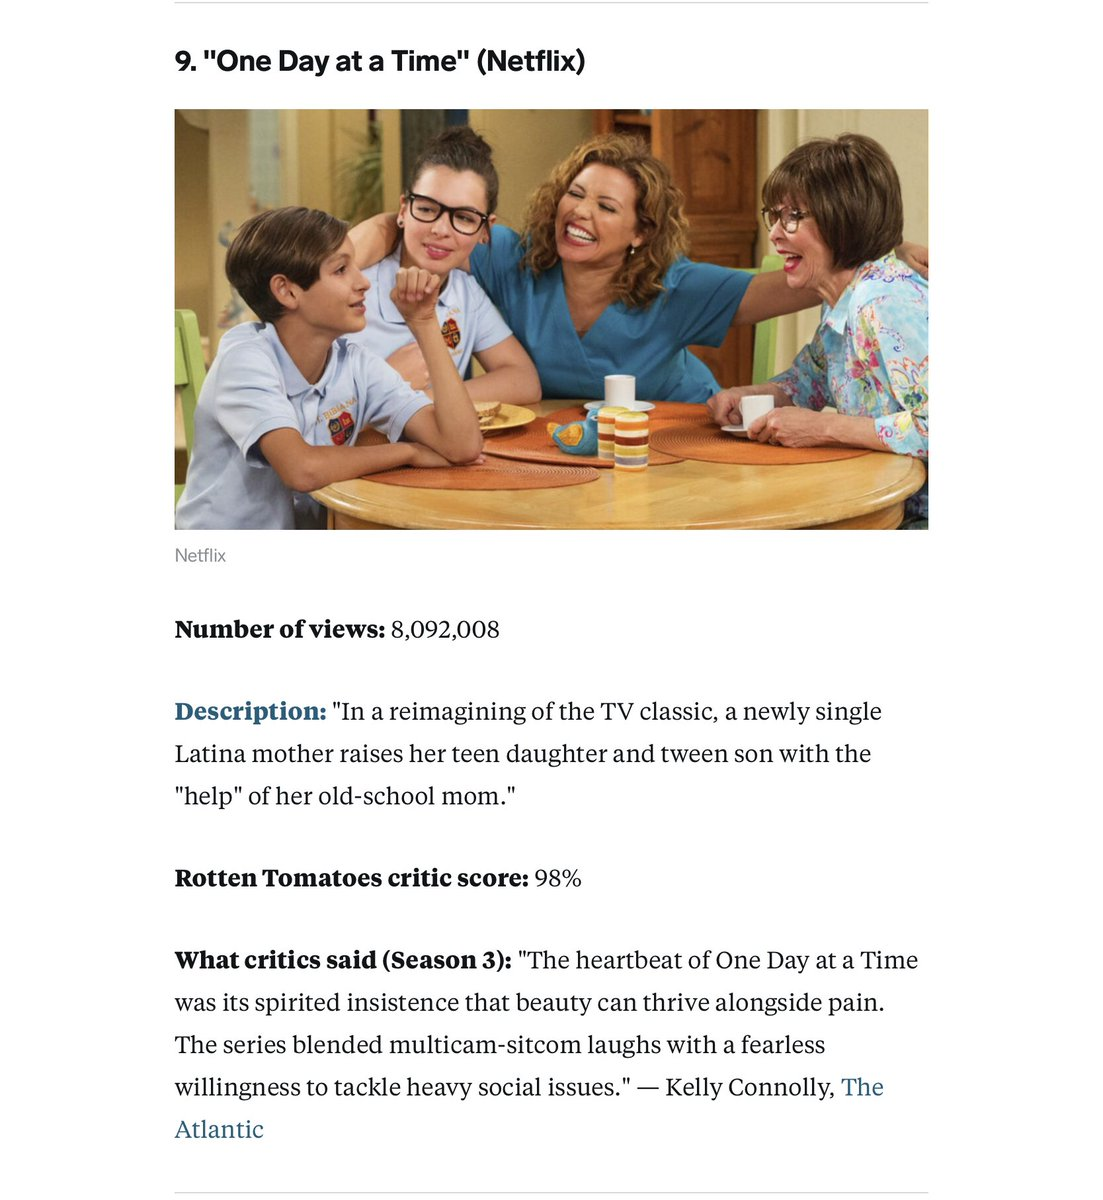 @MikeRoyce @everythingloria #OneDayAtATime 30 most popular shows on Netflix and other streaming services in 2019 - Business Insider  https://www. businessinsider.com/most-popular-s hows-from-netflix-hulu-original-tv-shows-umbrella-academy-2019-5 &nbsp; …  via @businessinsider<br>http://pic.twitter.com/plhrUJJDJ9